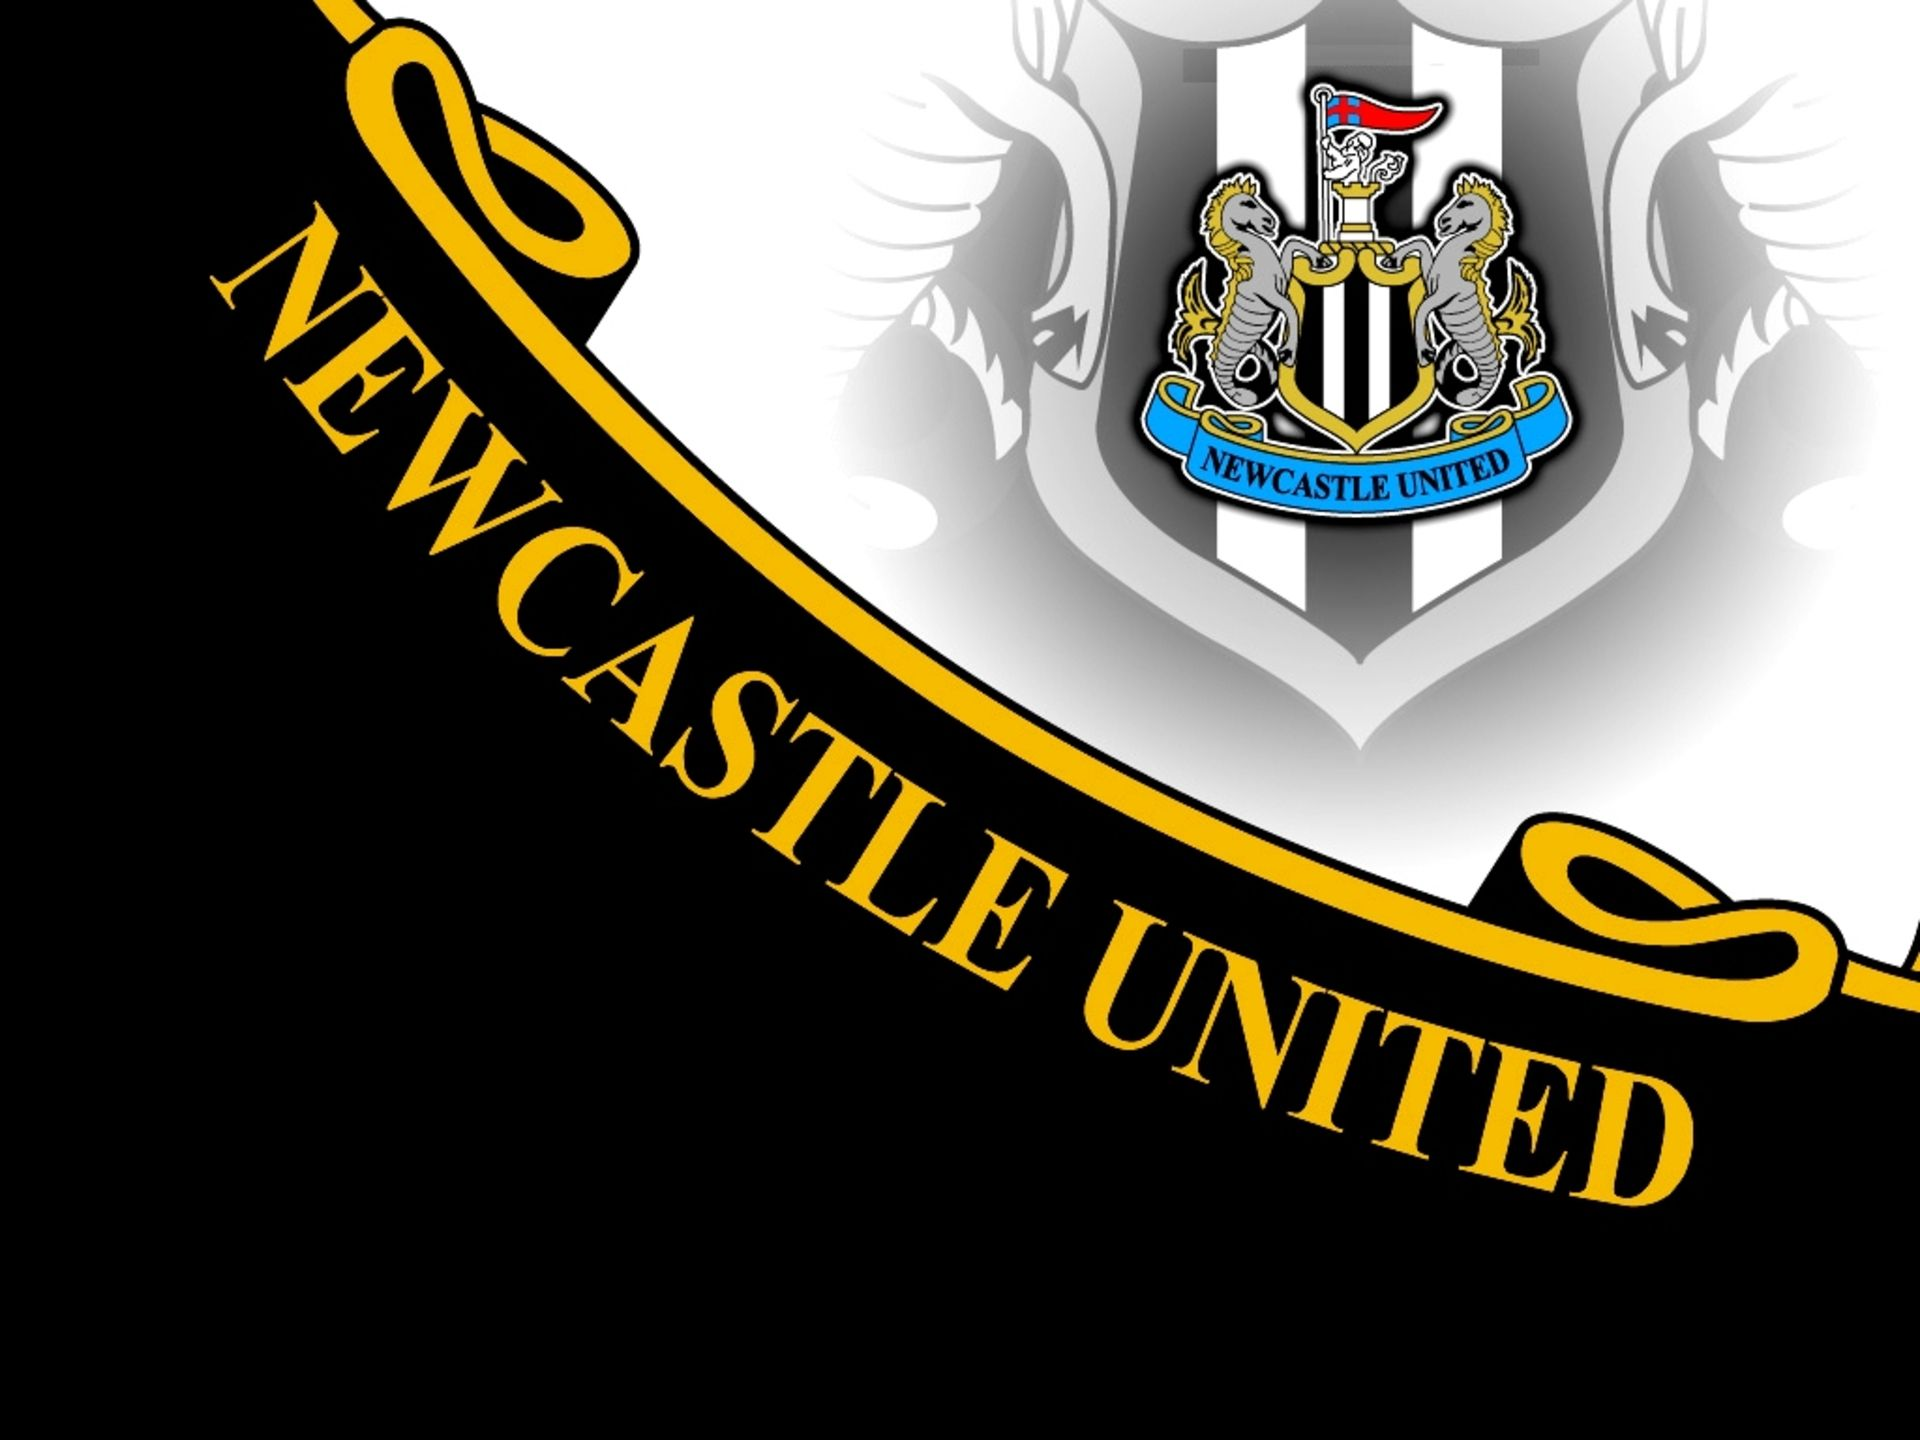 Newcastle United F C Wallpapers WallpapersIn4knet PL 1920x1440